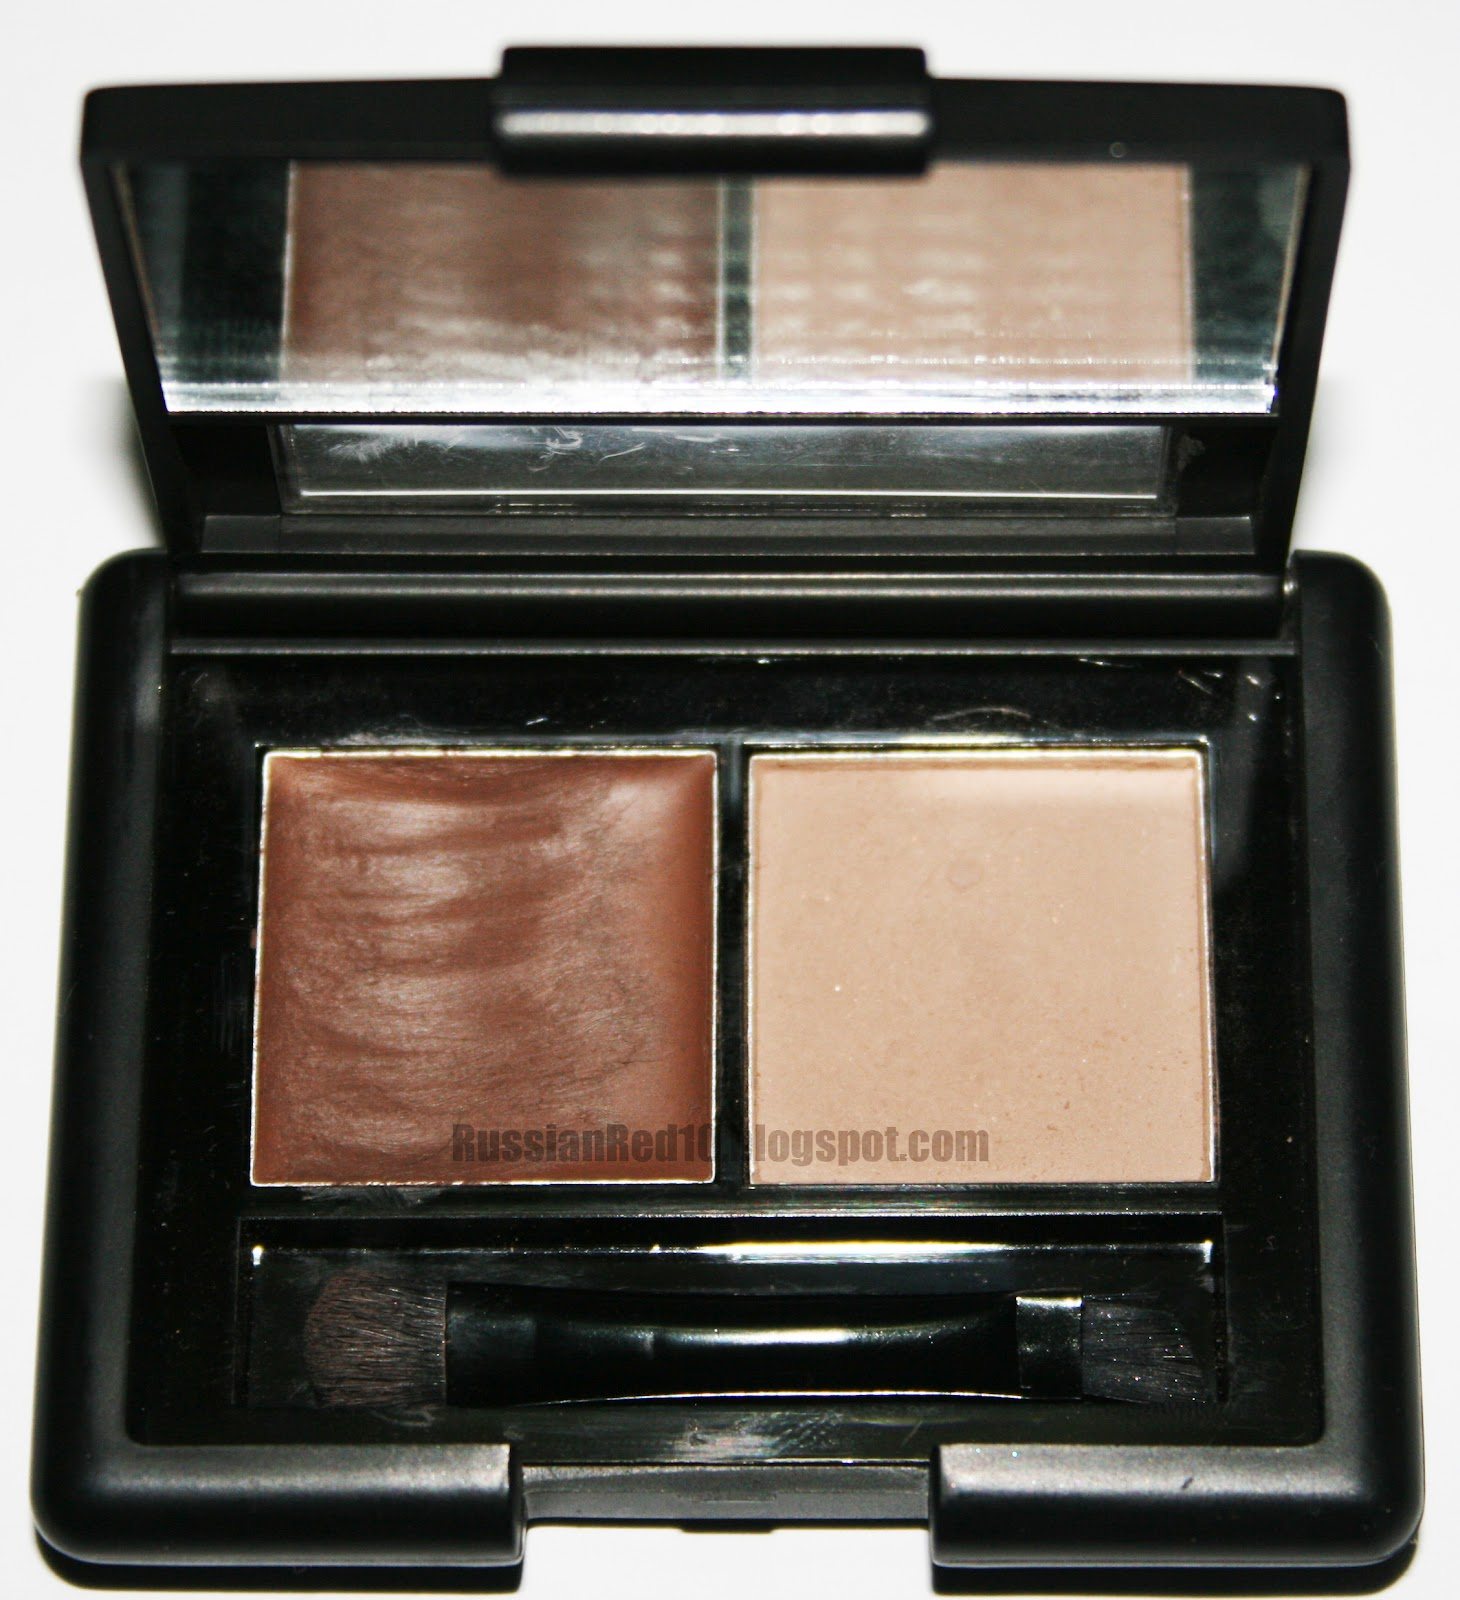 The Face Guide Review Elf Eyebrow Kit In Light